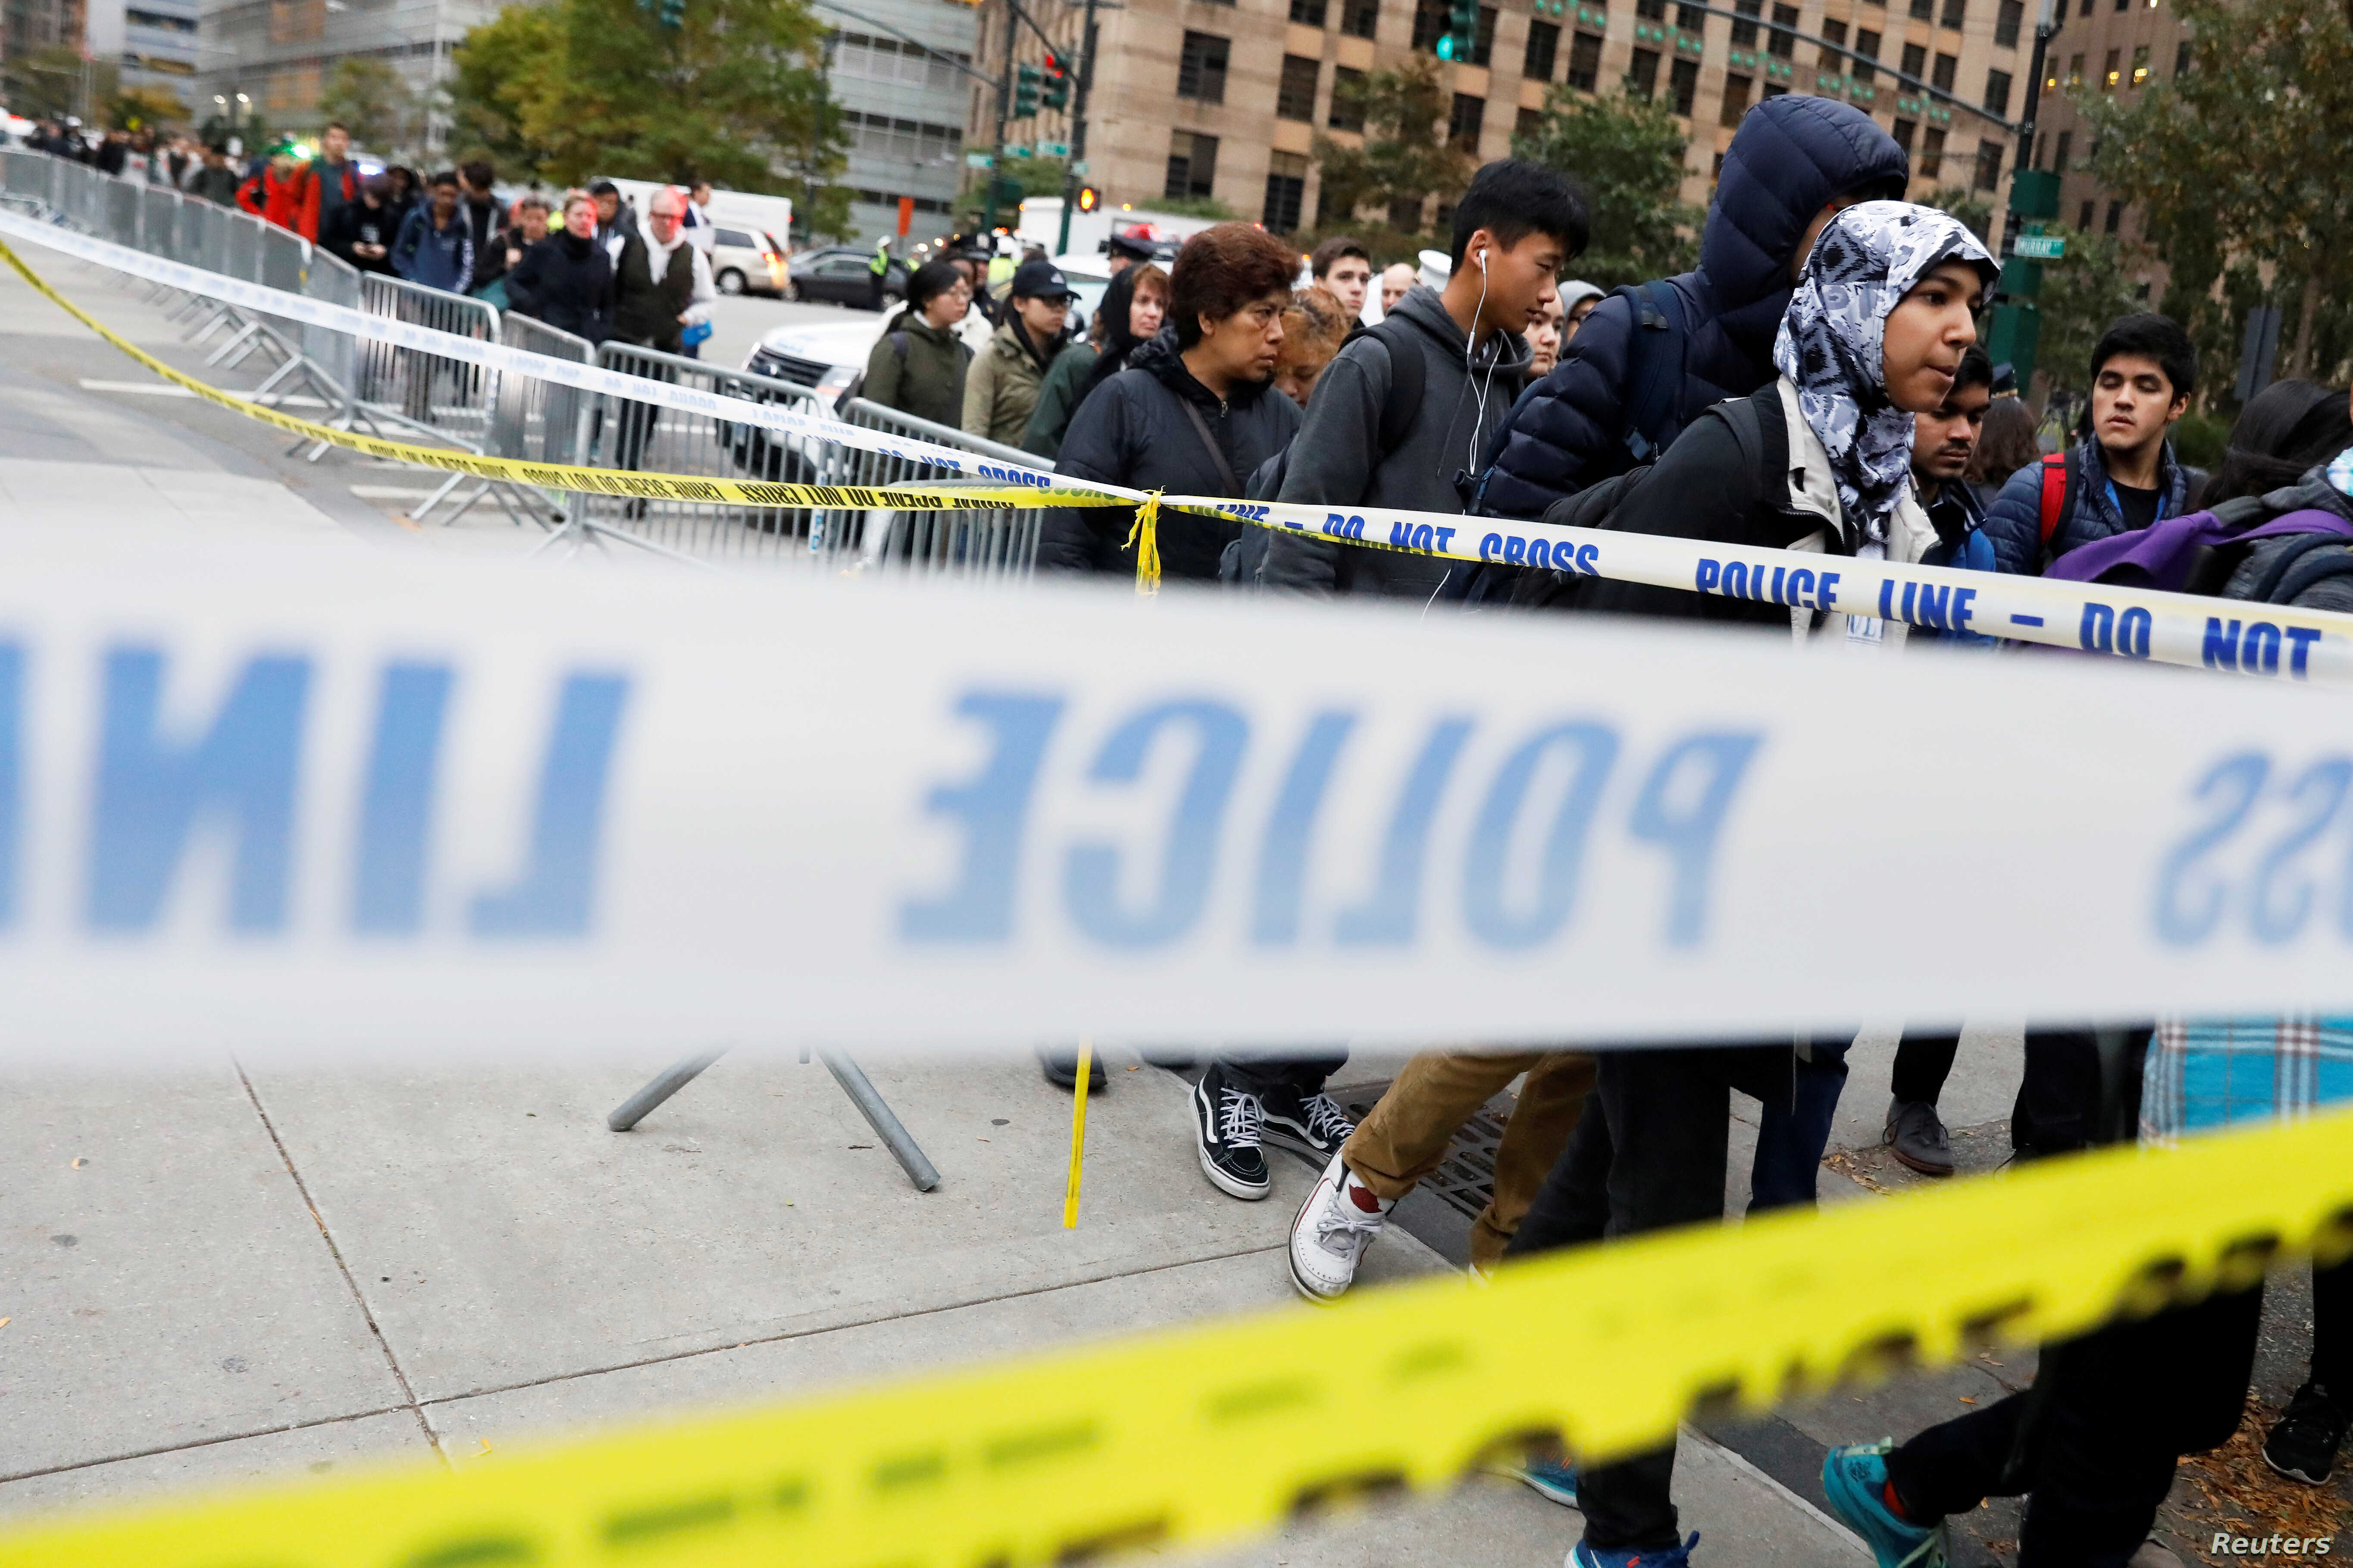 Students walk past police line tape on their way to school a day after a man driving a rented pickup truck mowed down pedestrians and cyclists on a bike path alongside the Hudson River in New York City, Nov. 1, 2017.